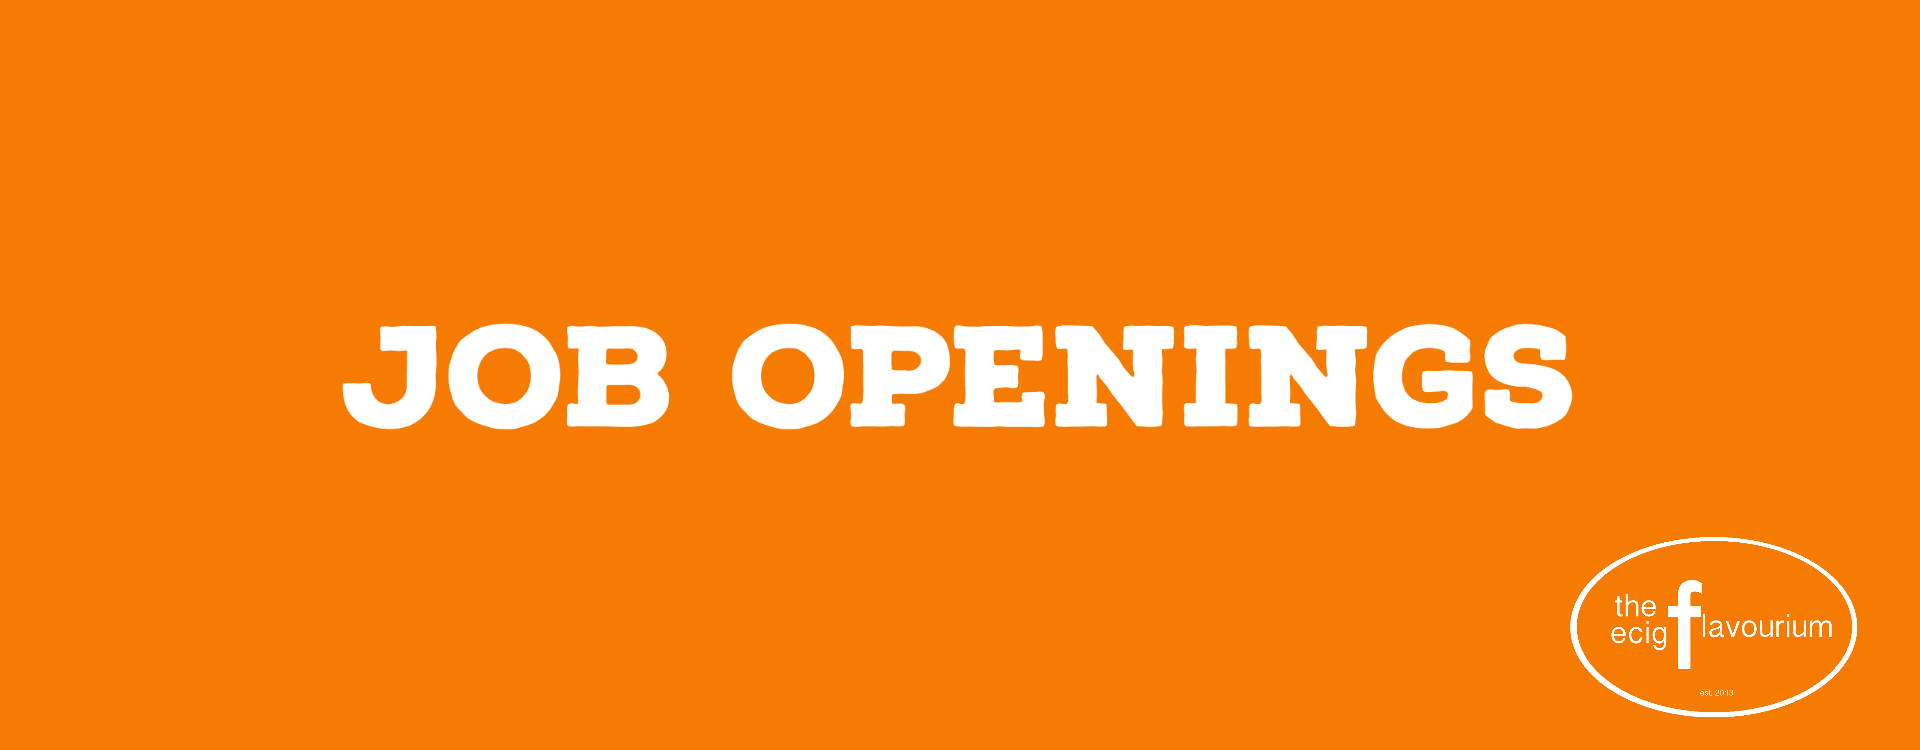 Job Opening Vape Shop Port Hope